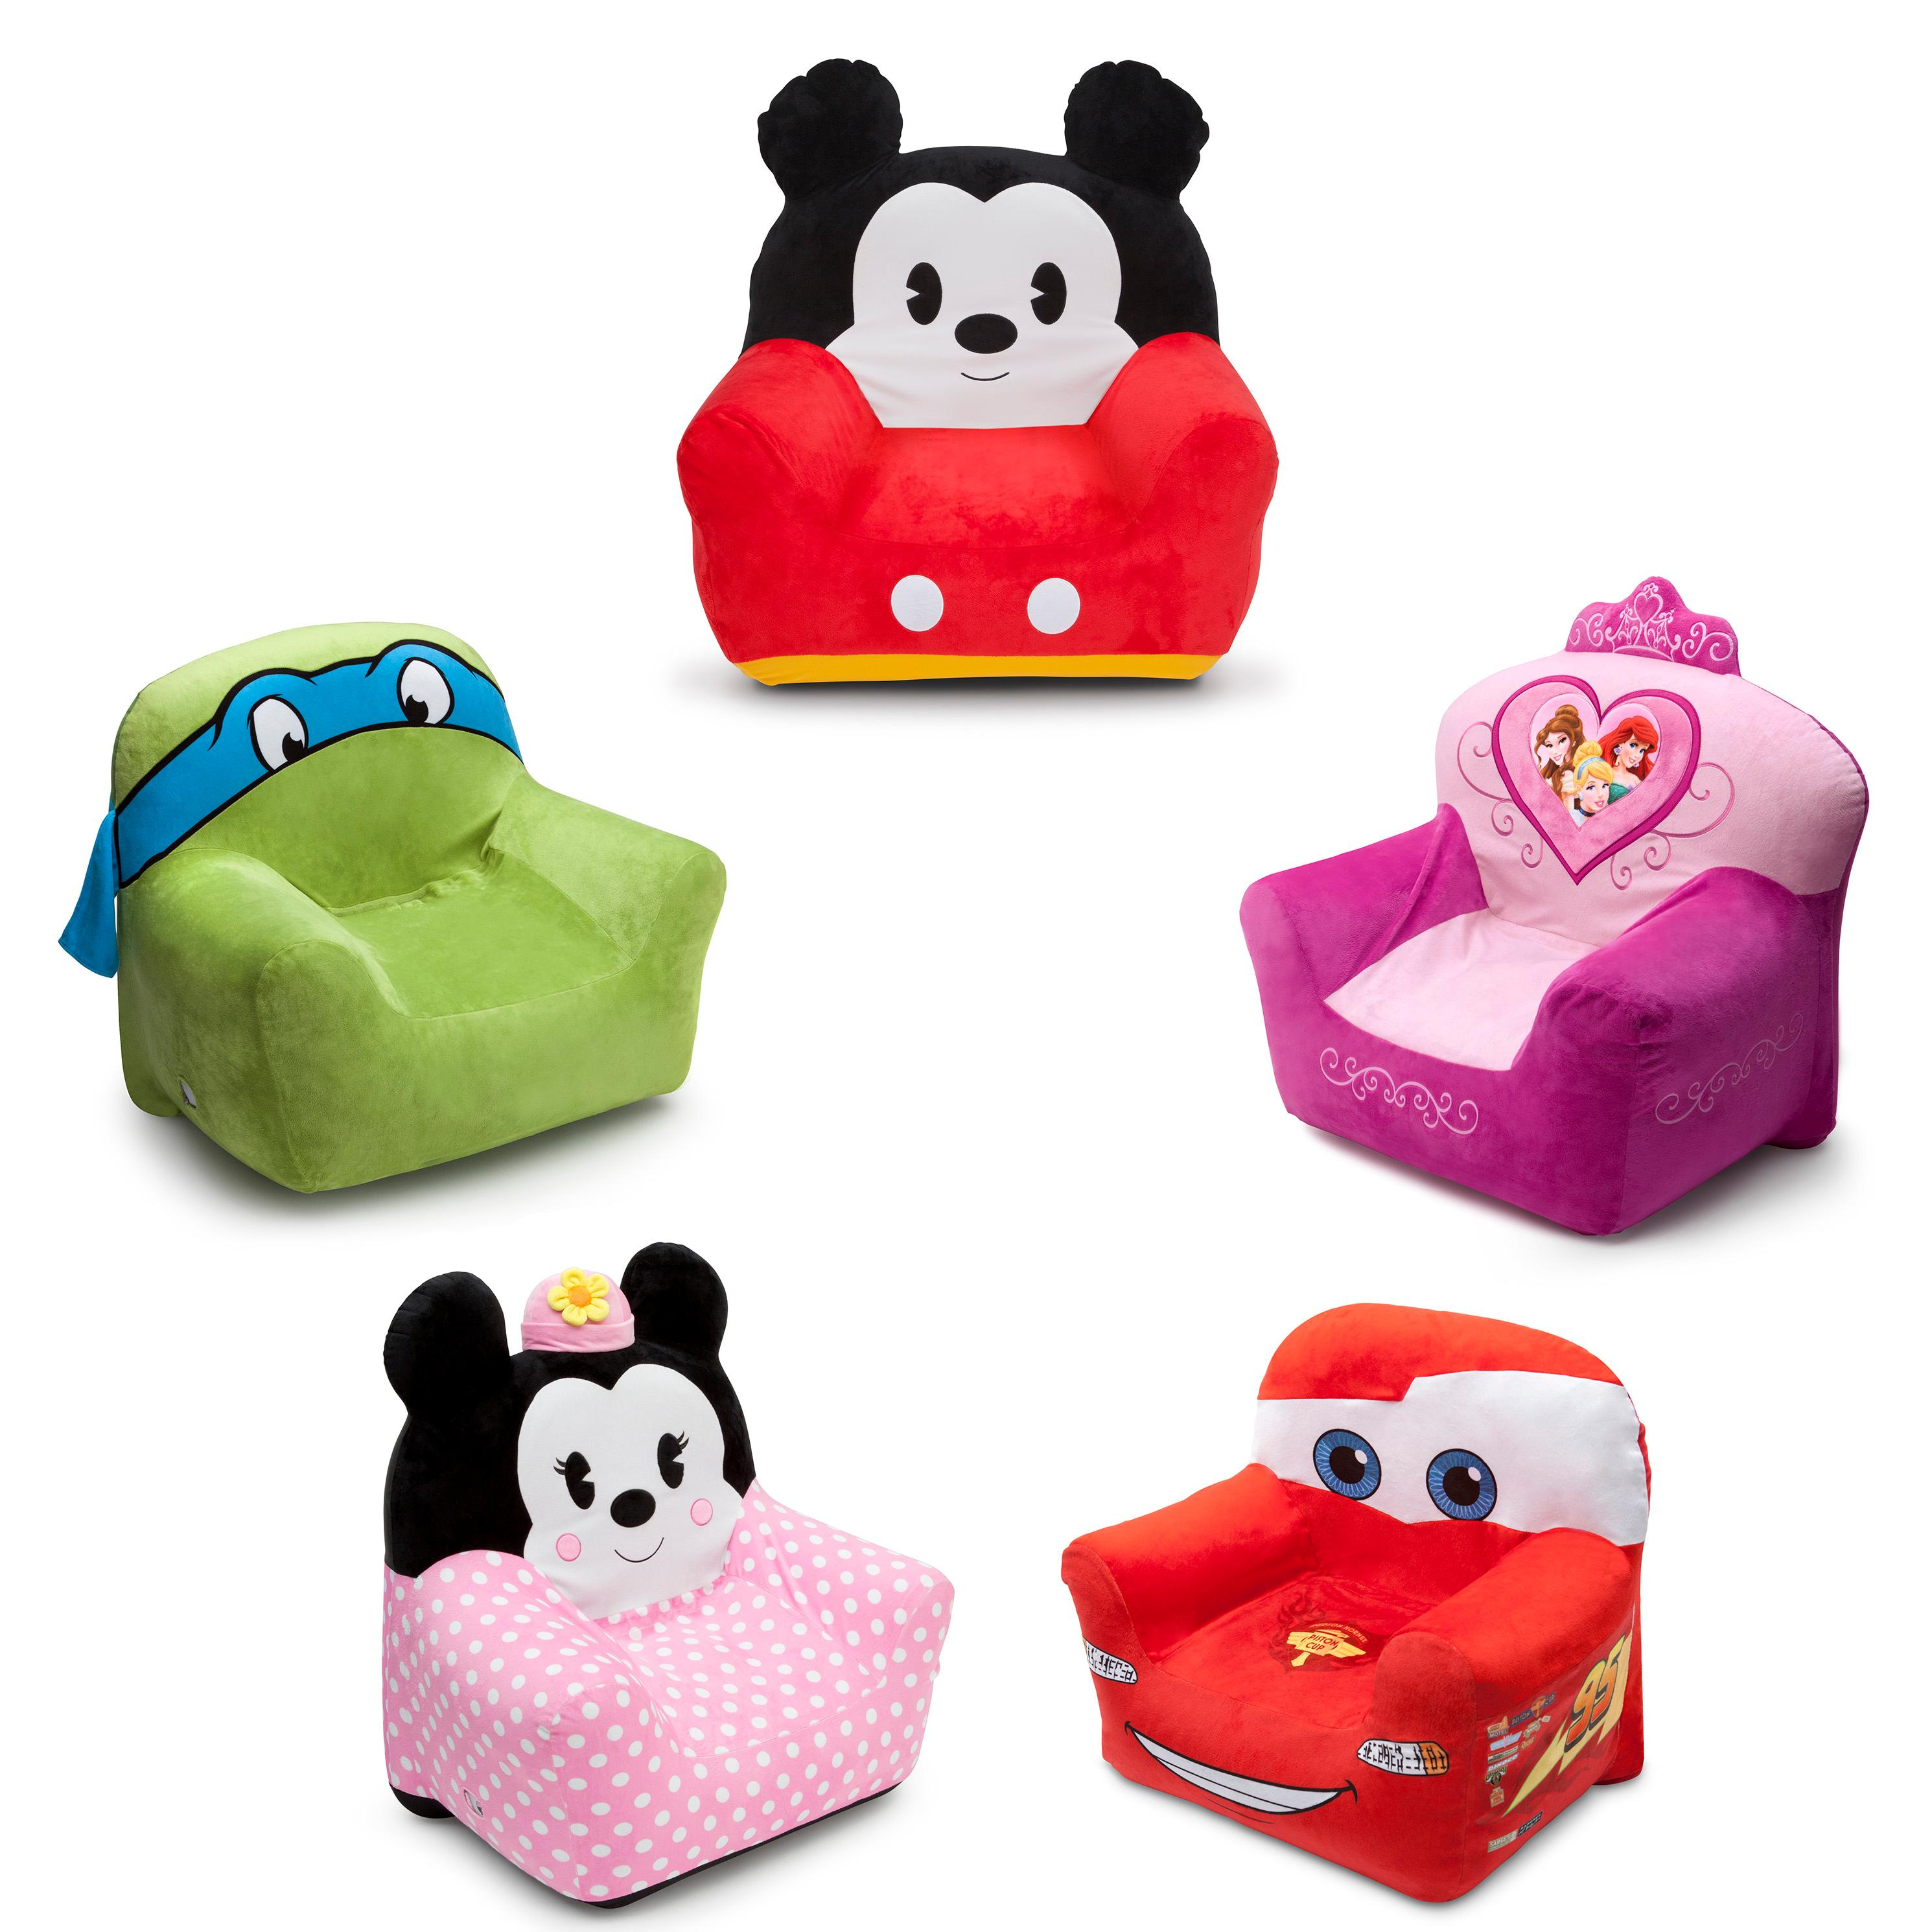 Beautiful Kids Furniture, Kids Chair, Kids Room, Comfy, Plush, Inflatable, Bubble